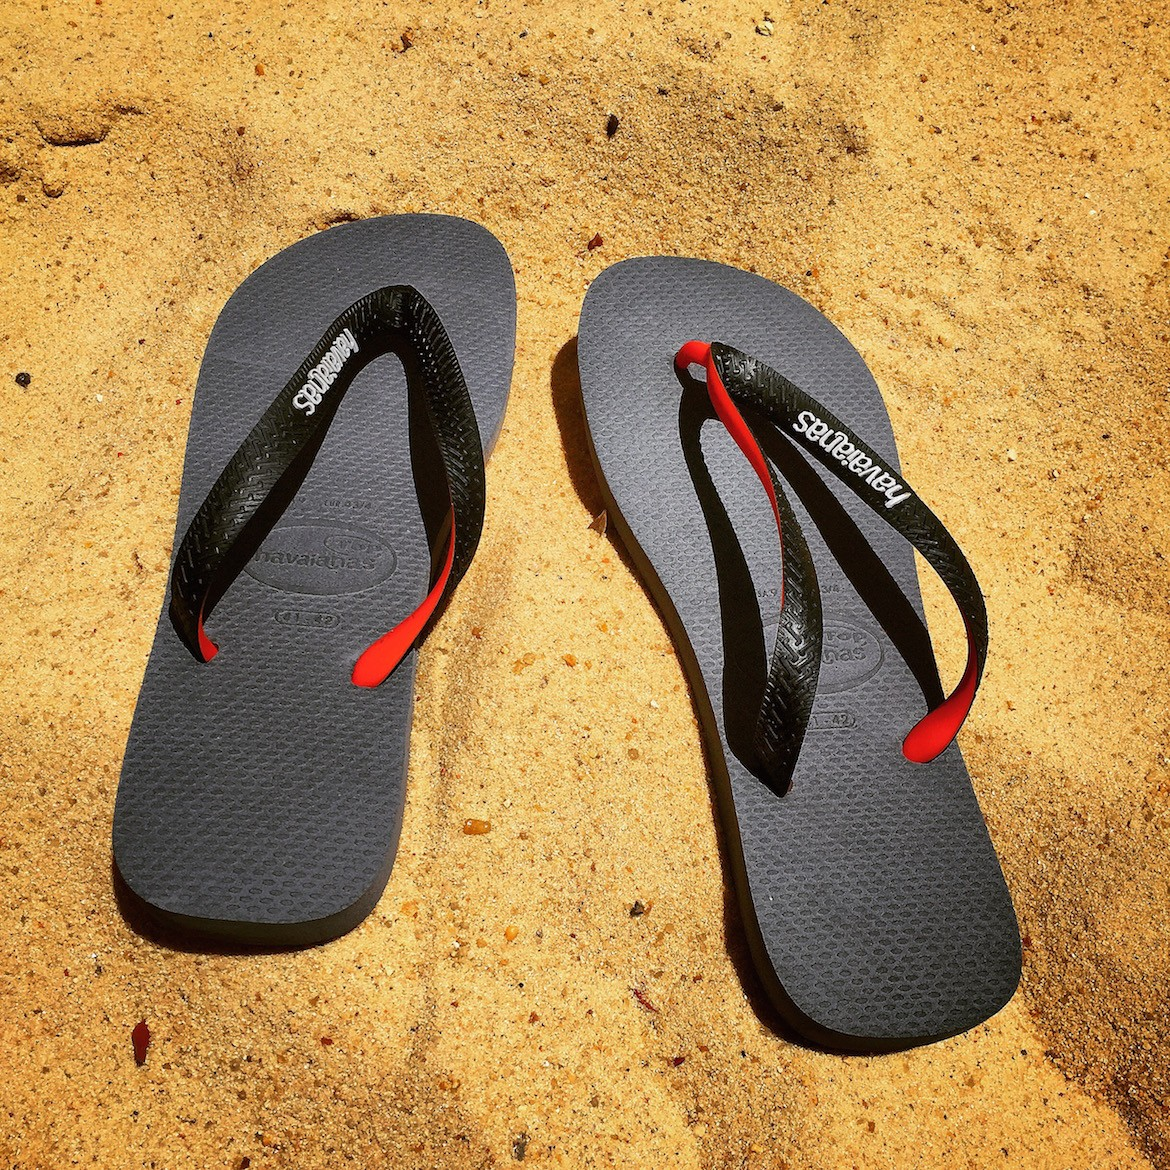 Wearing Havaianas flip-flops & my #summer2015 mood...